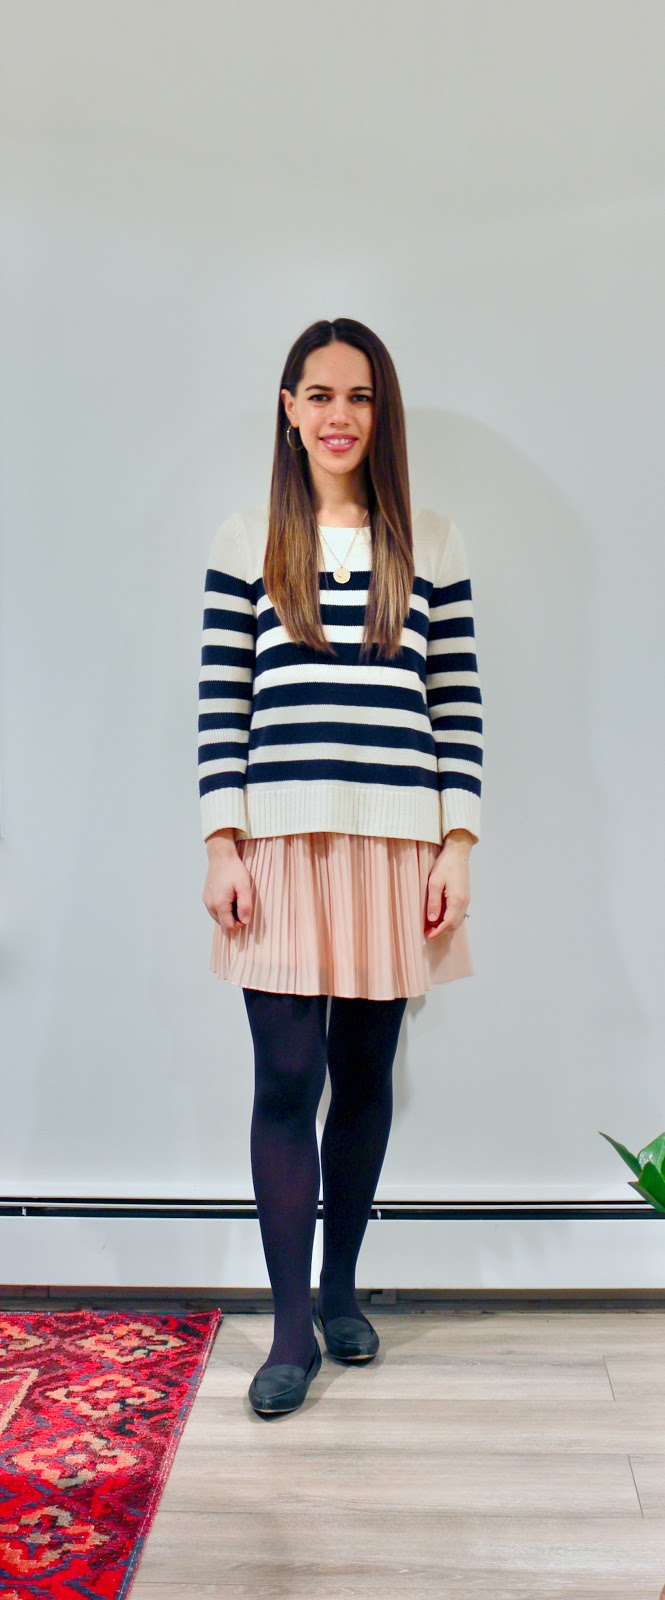 Jules in Flats - Striped Sweater with Pleated Mini Skirt (Business Casual Winter Workwear on a Budget)